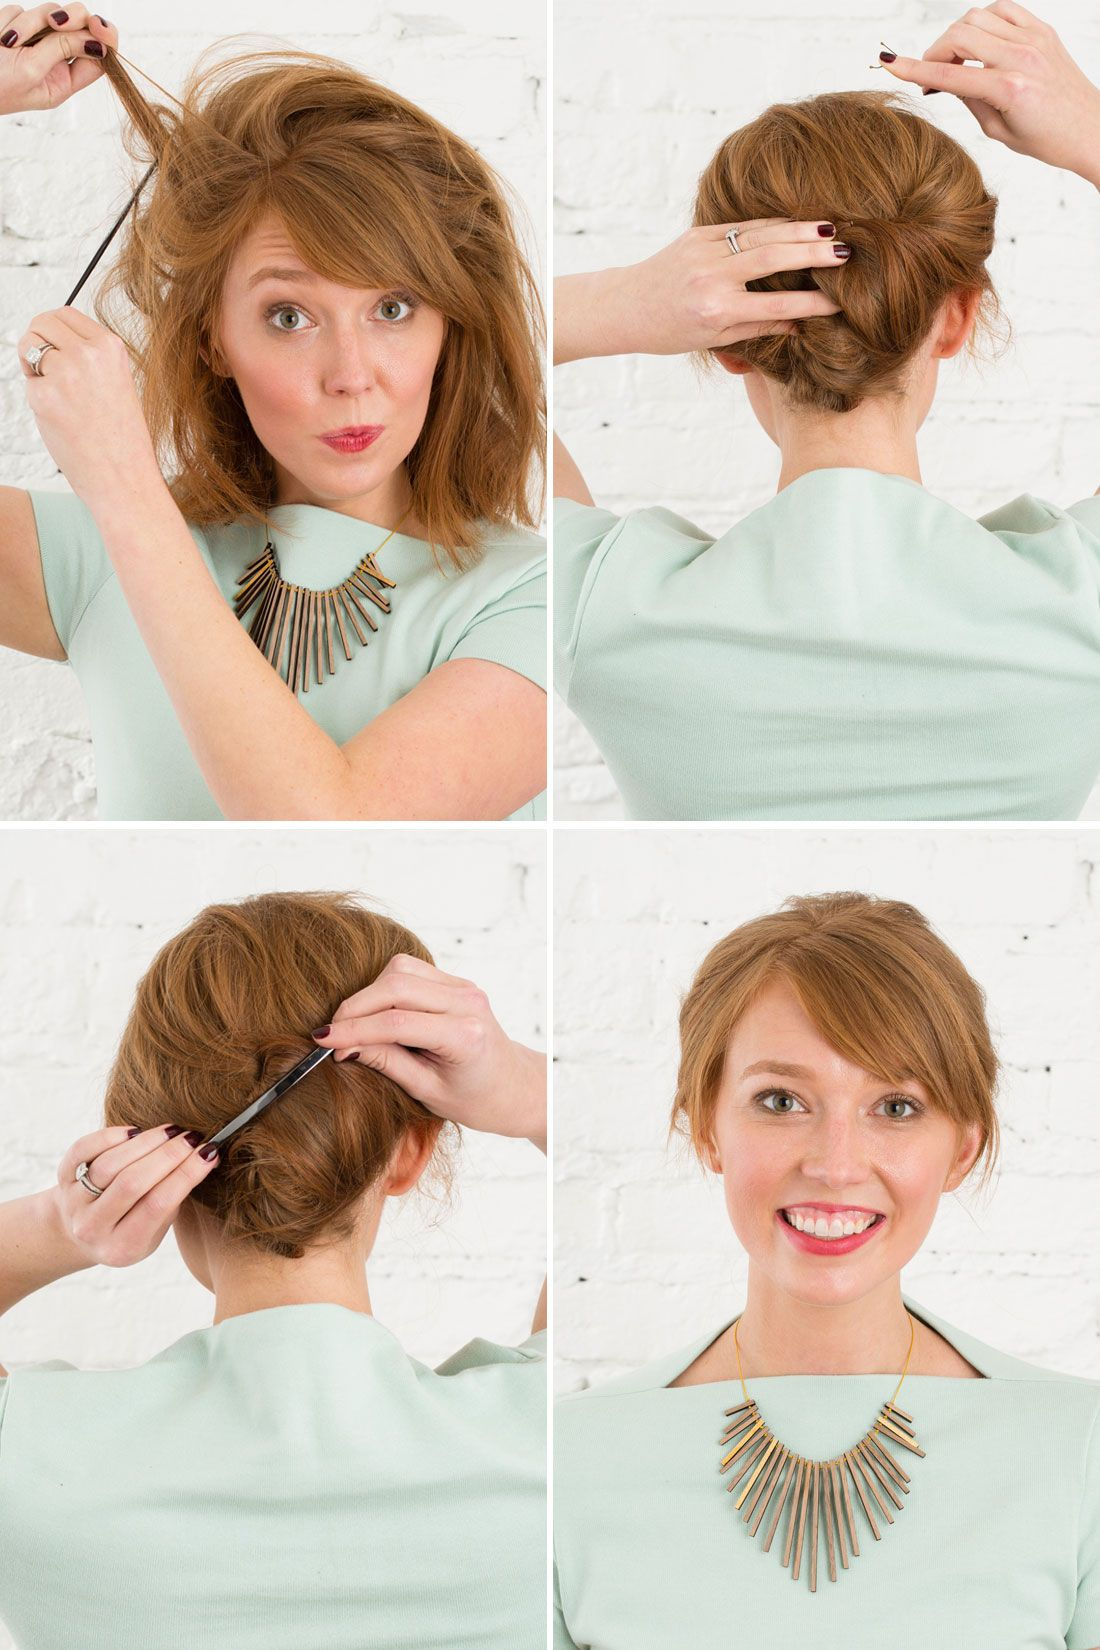 Barrette Hairstyles 3 Easy 5Minute Hairstyles Using Emma Stone's Metal Barrette  Updo